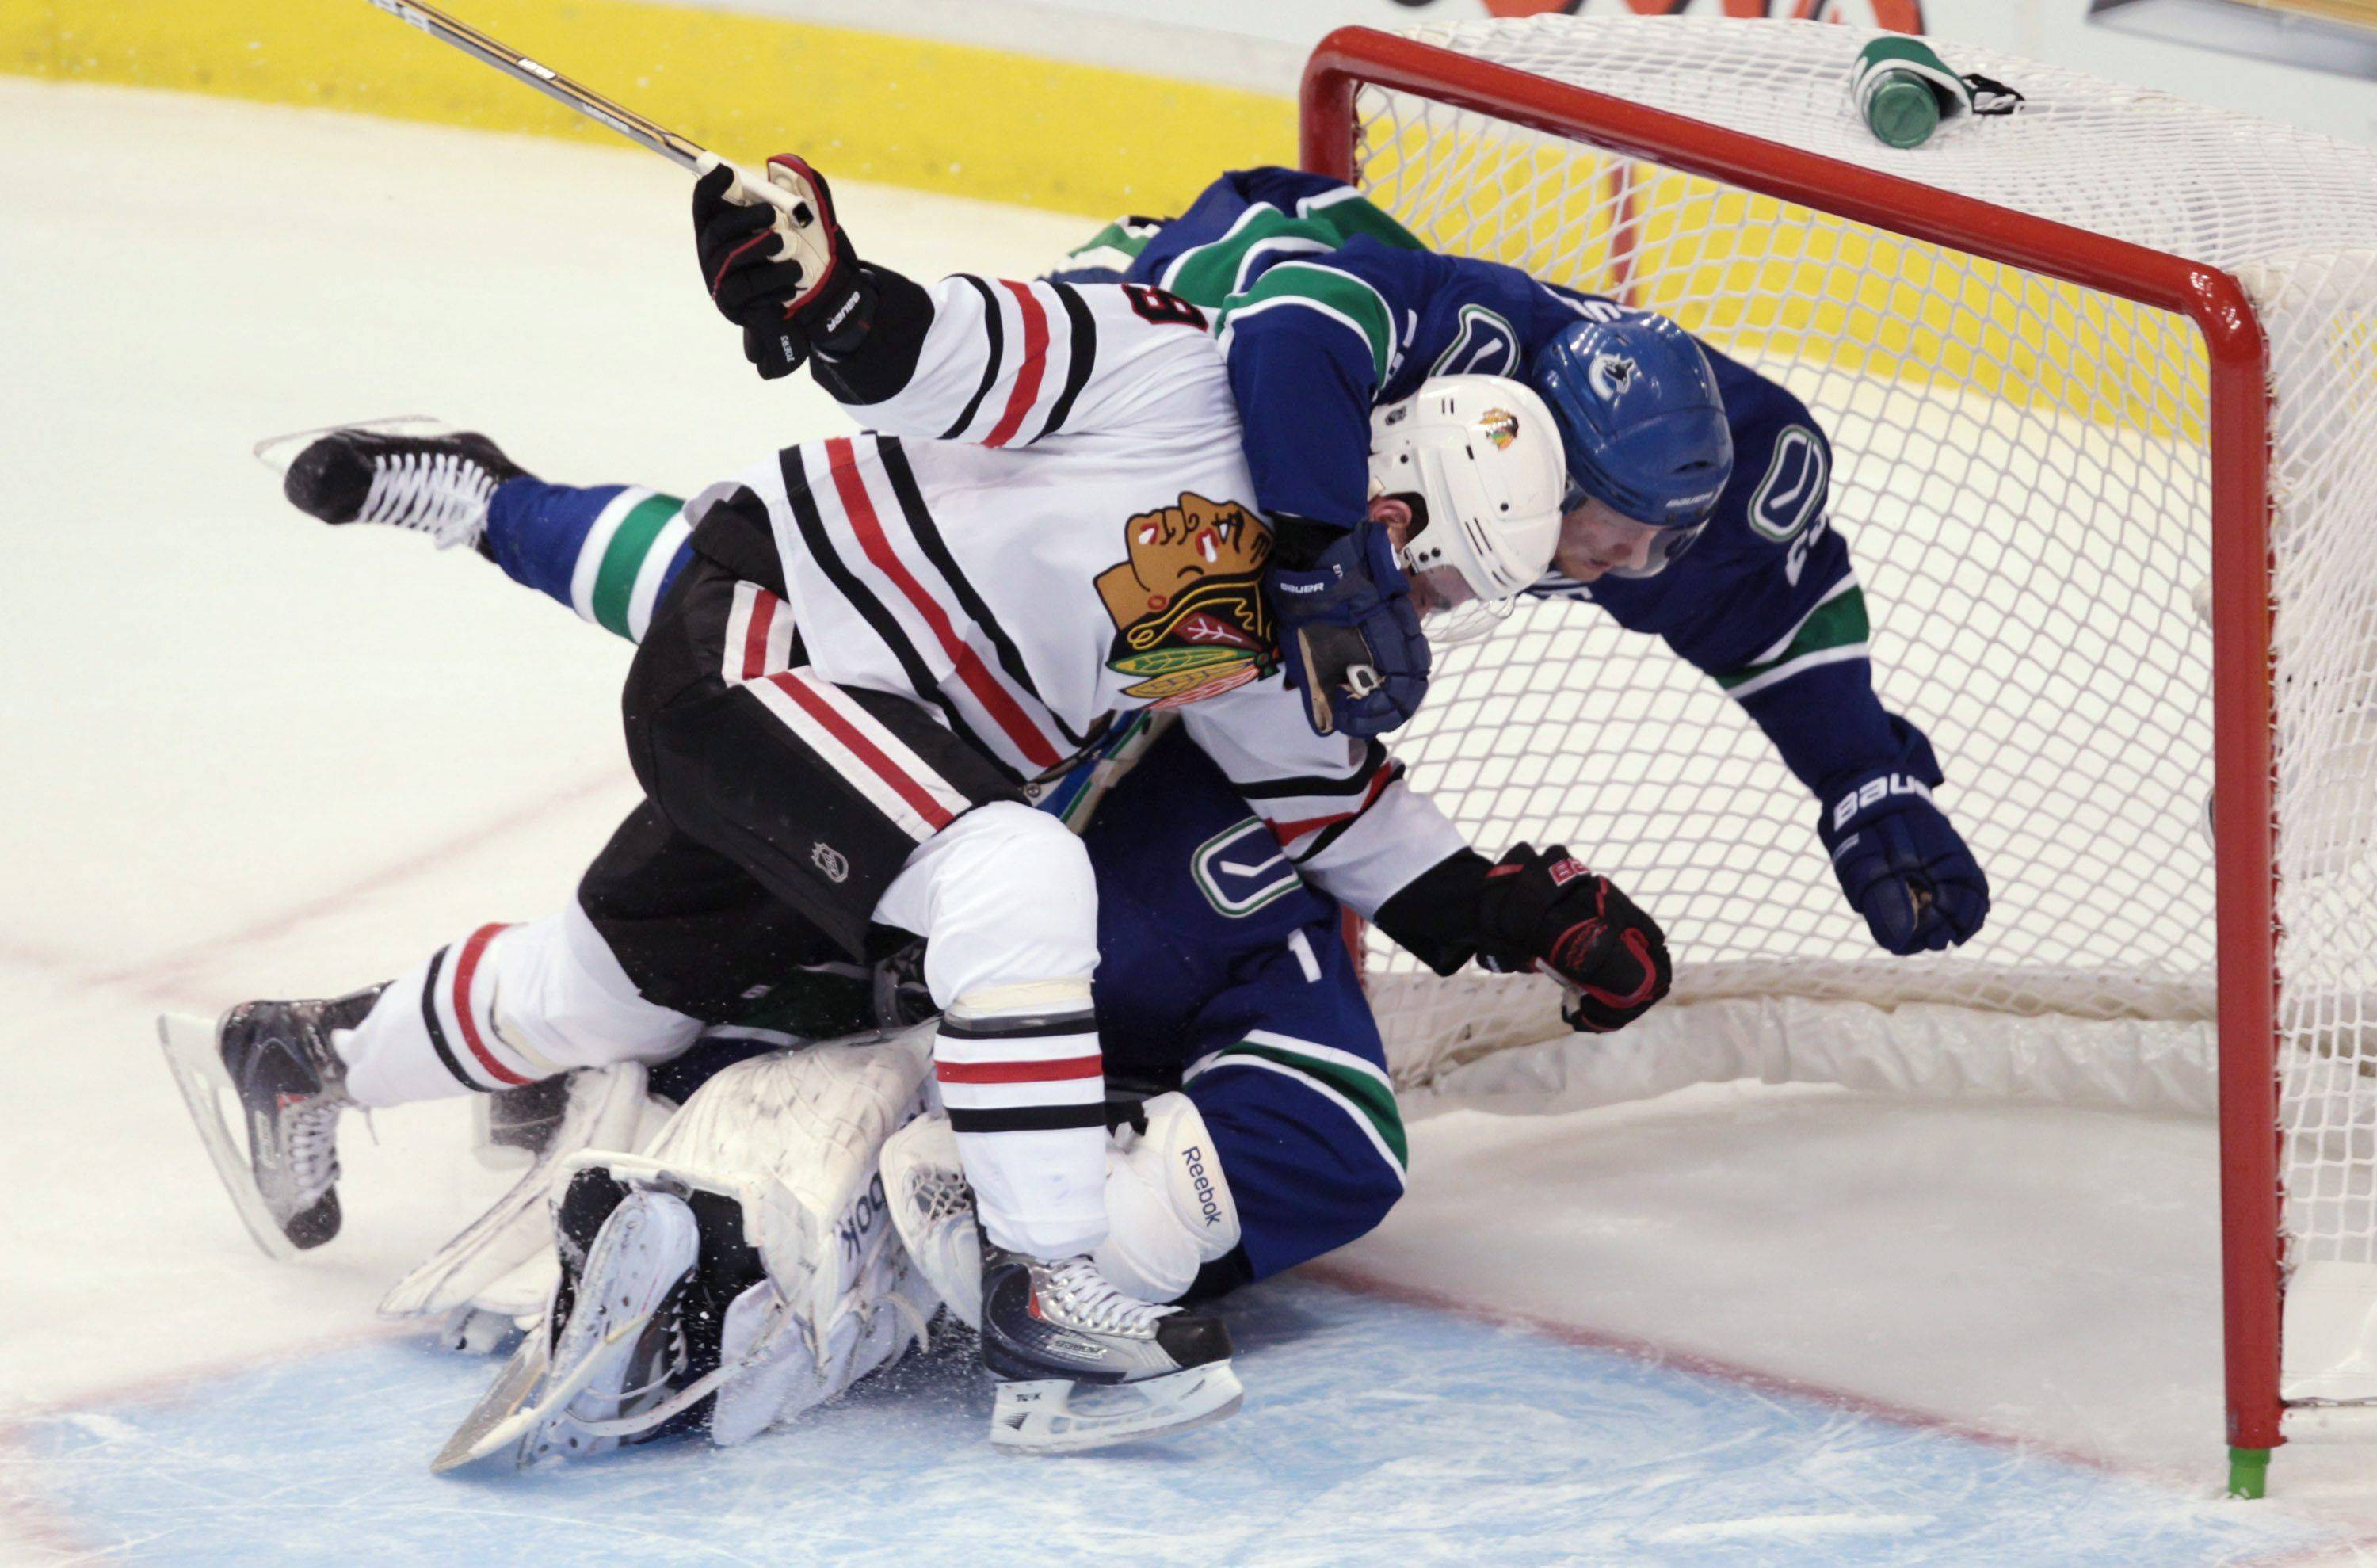 Jonathan Toews and the Canucks' Alexander Edler crash into Canucks goalie Roberto Luongo during the first period of Game 5.